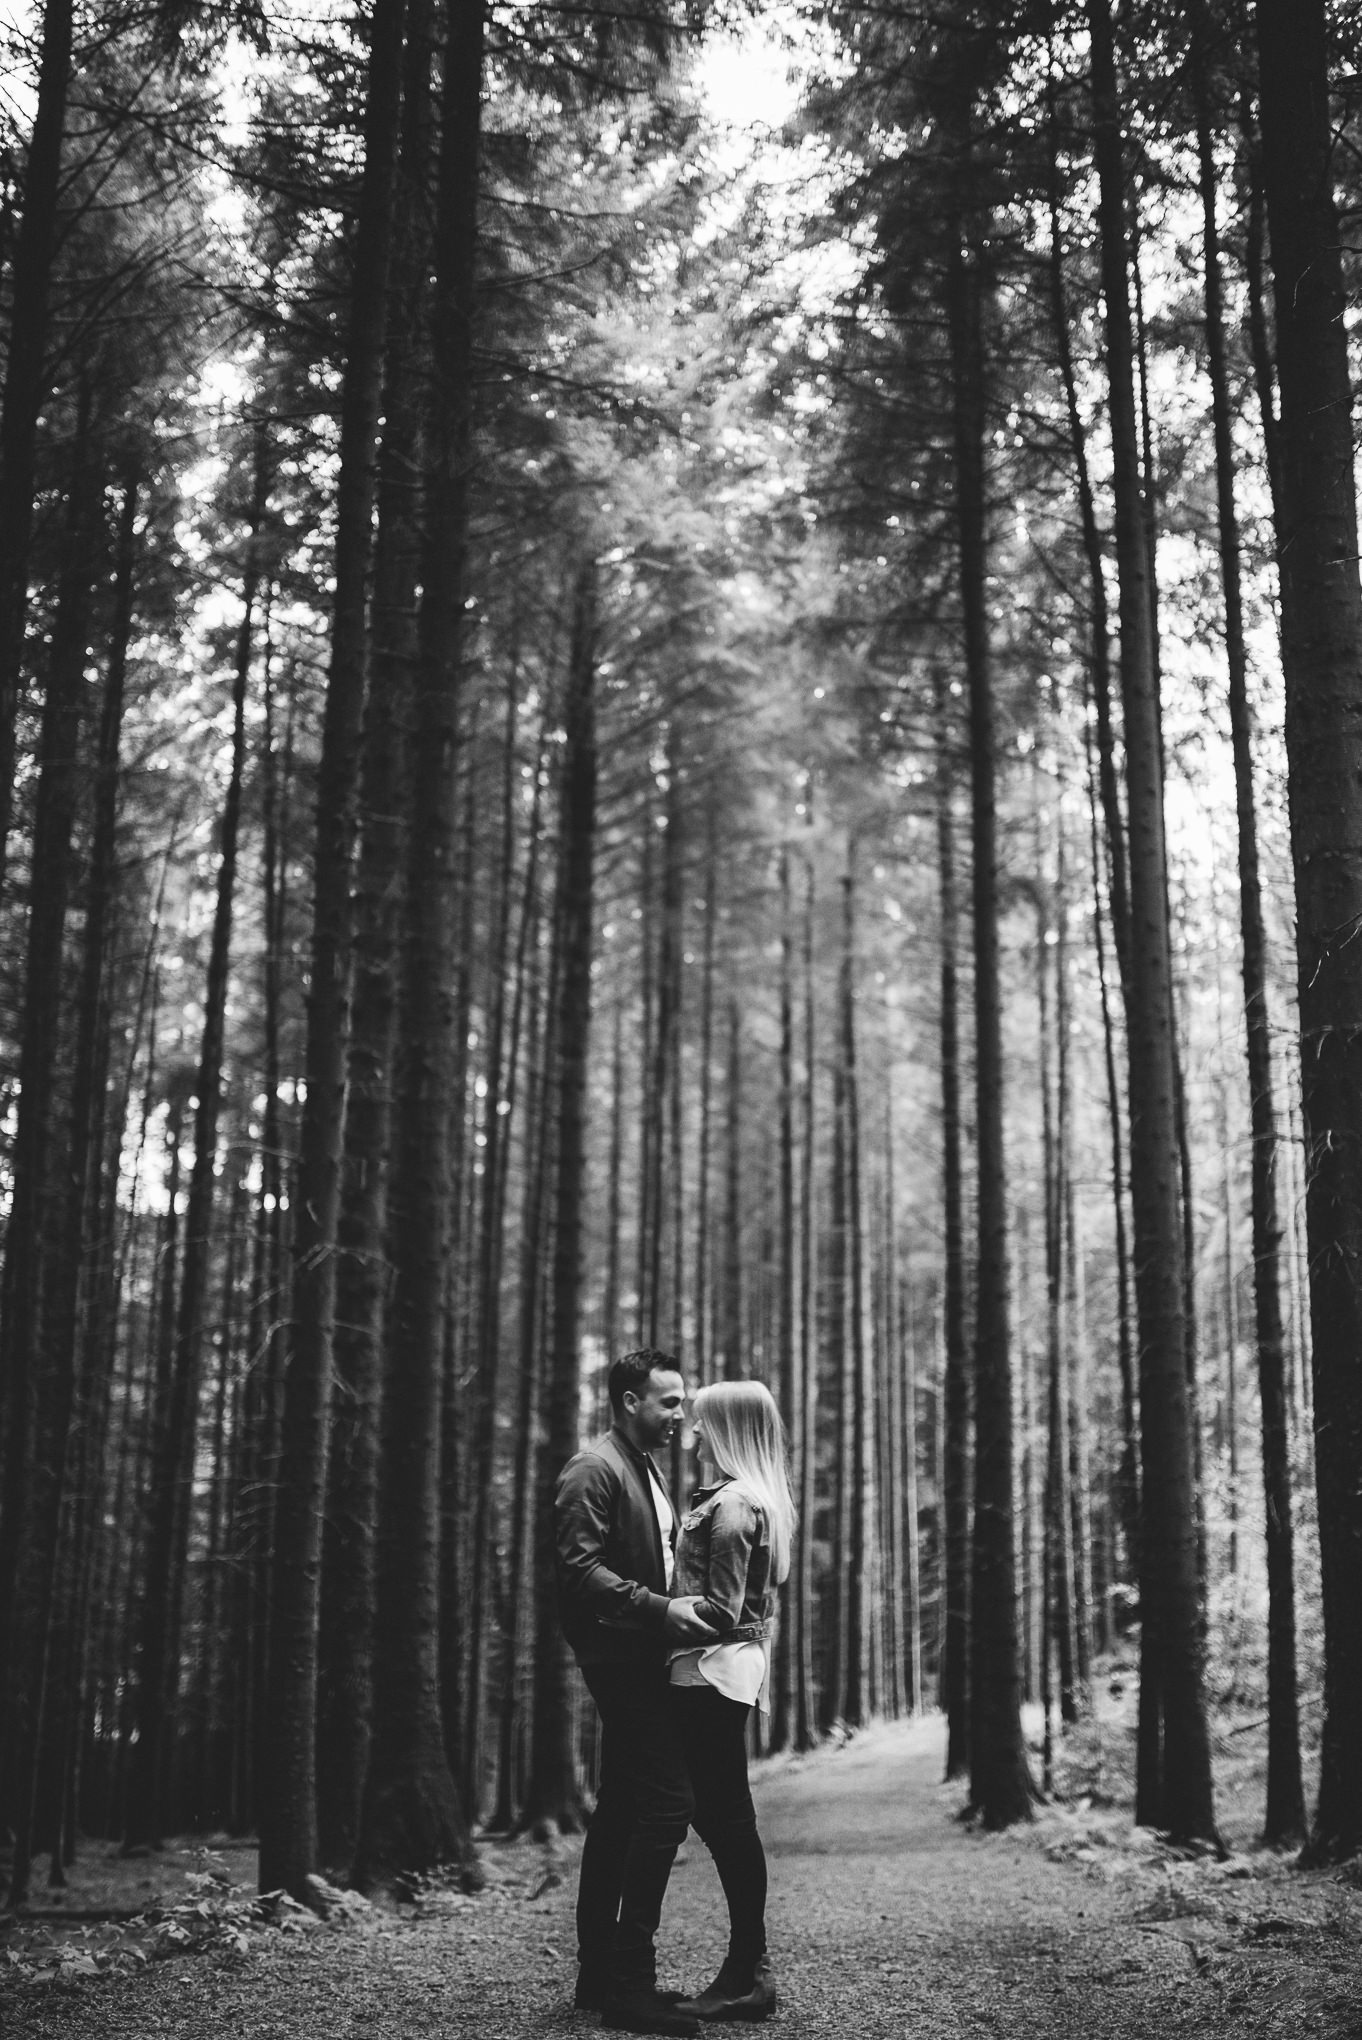 Stood together on a path in between tall trees. Lancashire lifestyle photography